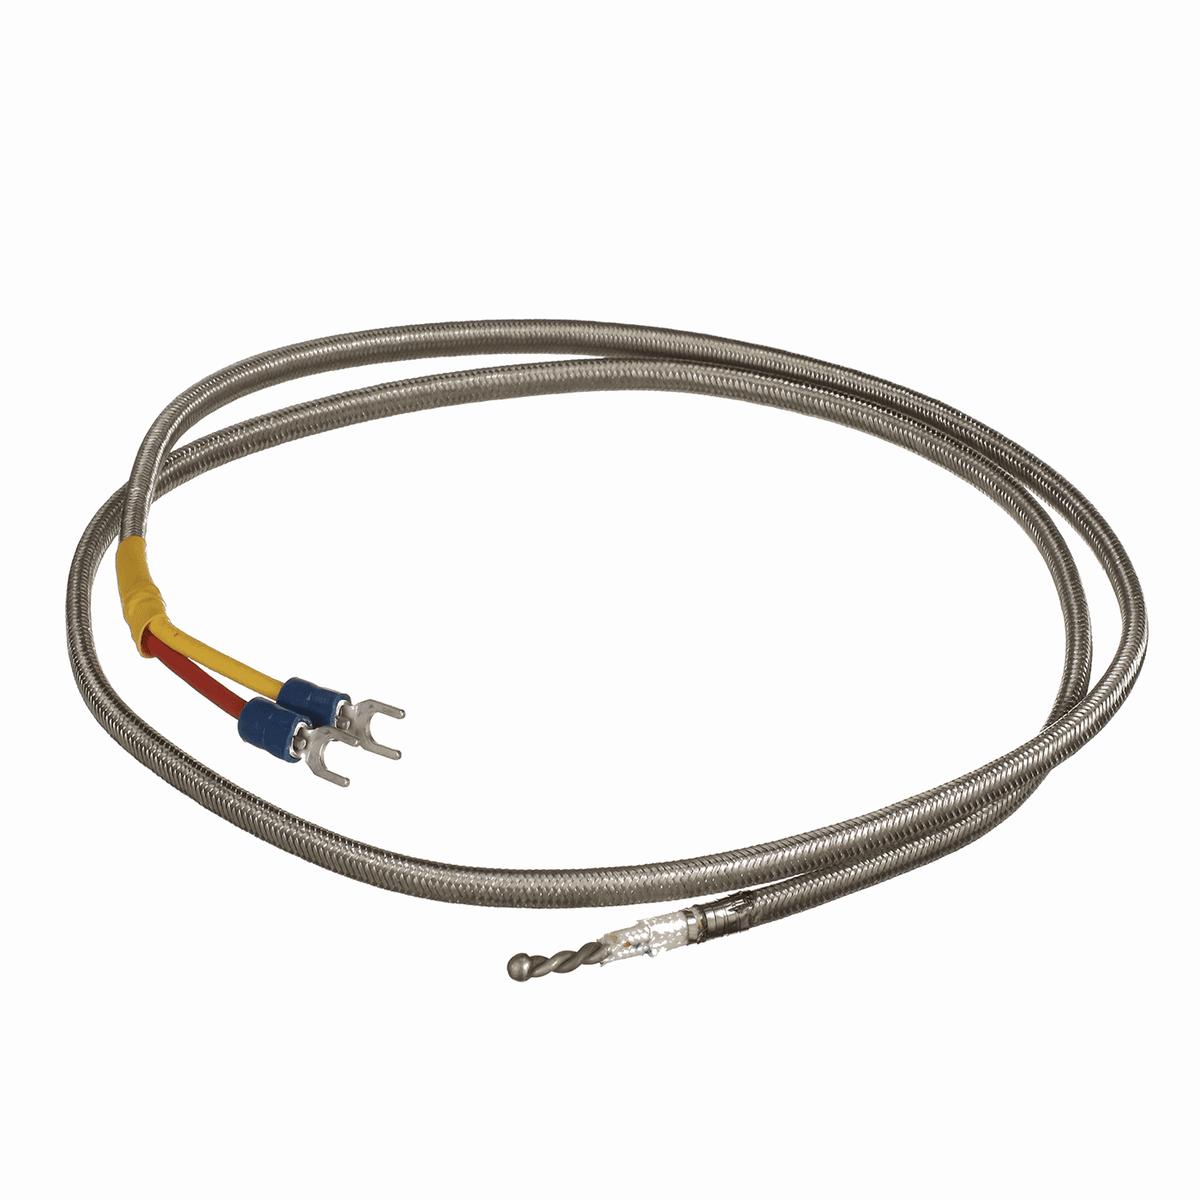 1000 1100i all other models in description 1200i Stoves AMP-20153 1200 QuadraFire 812-0210 Thermocouple 800 New part